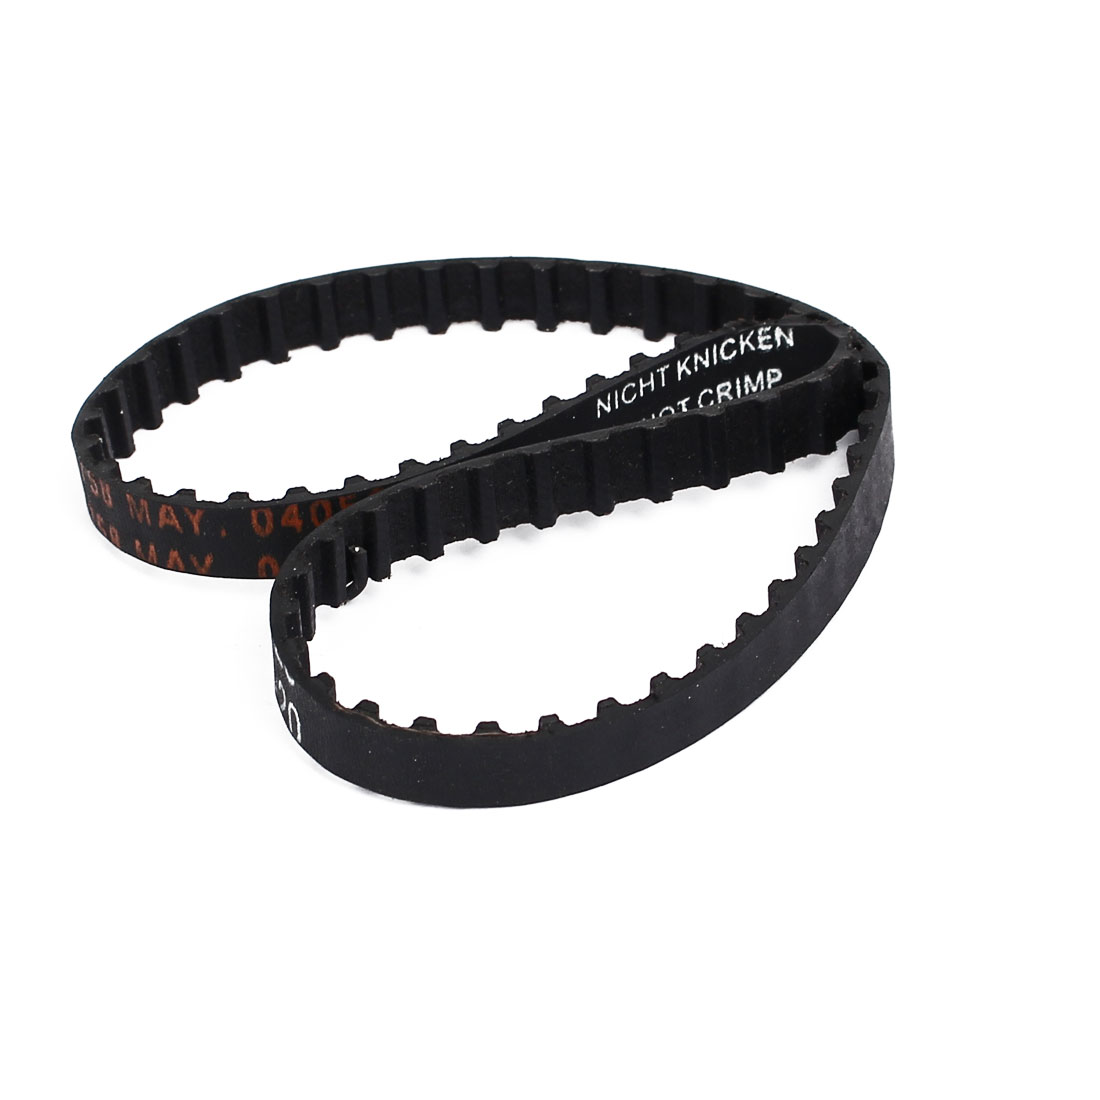 130XL Rubber Closed Loop Timing Belt Black 330mm Circumference 6mm Width 2pcs